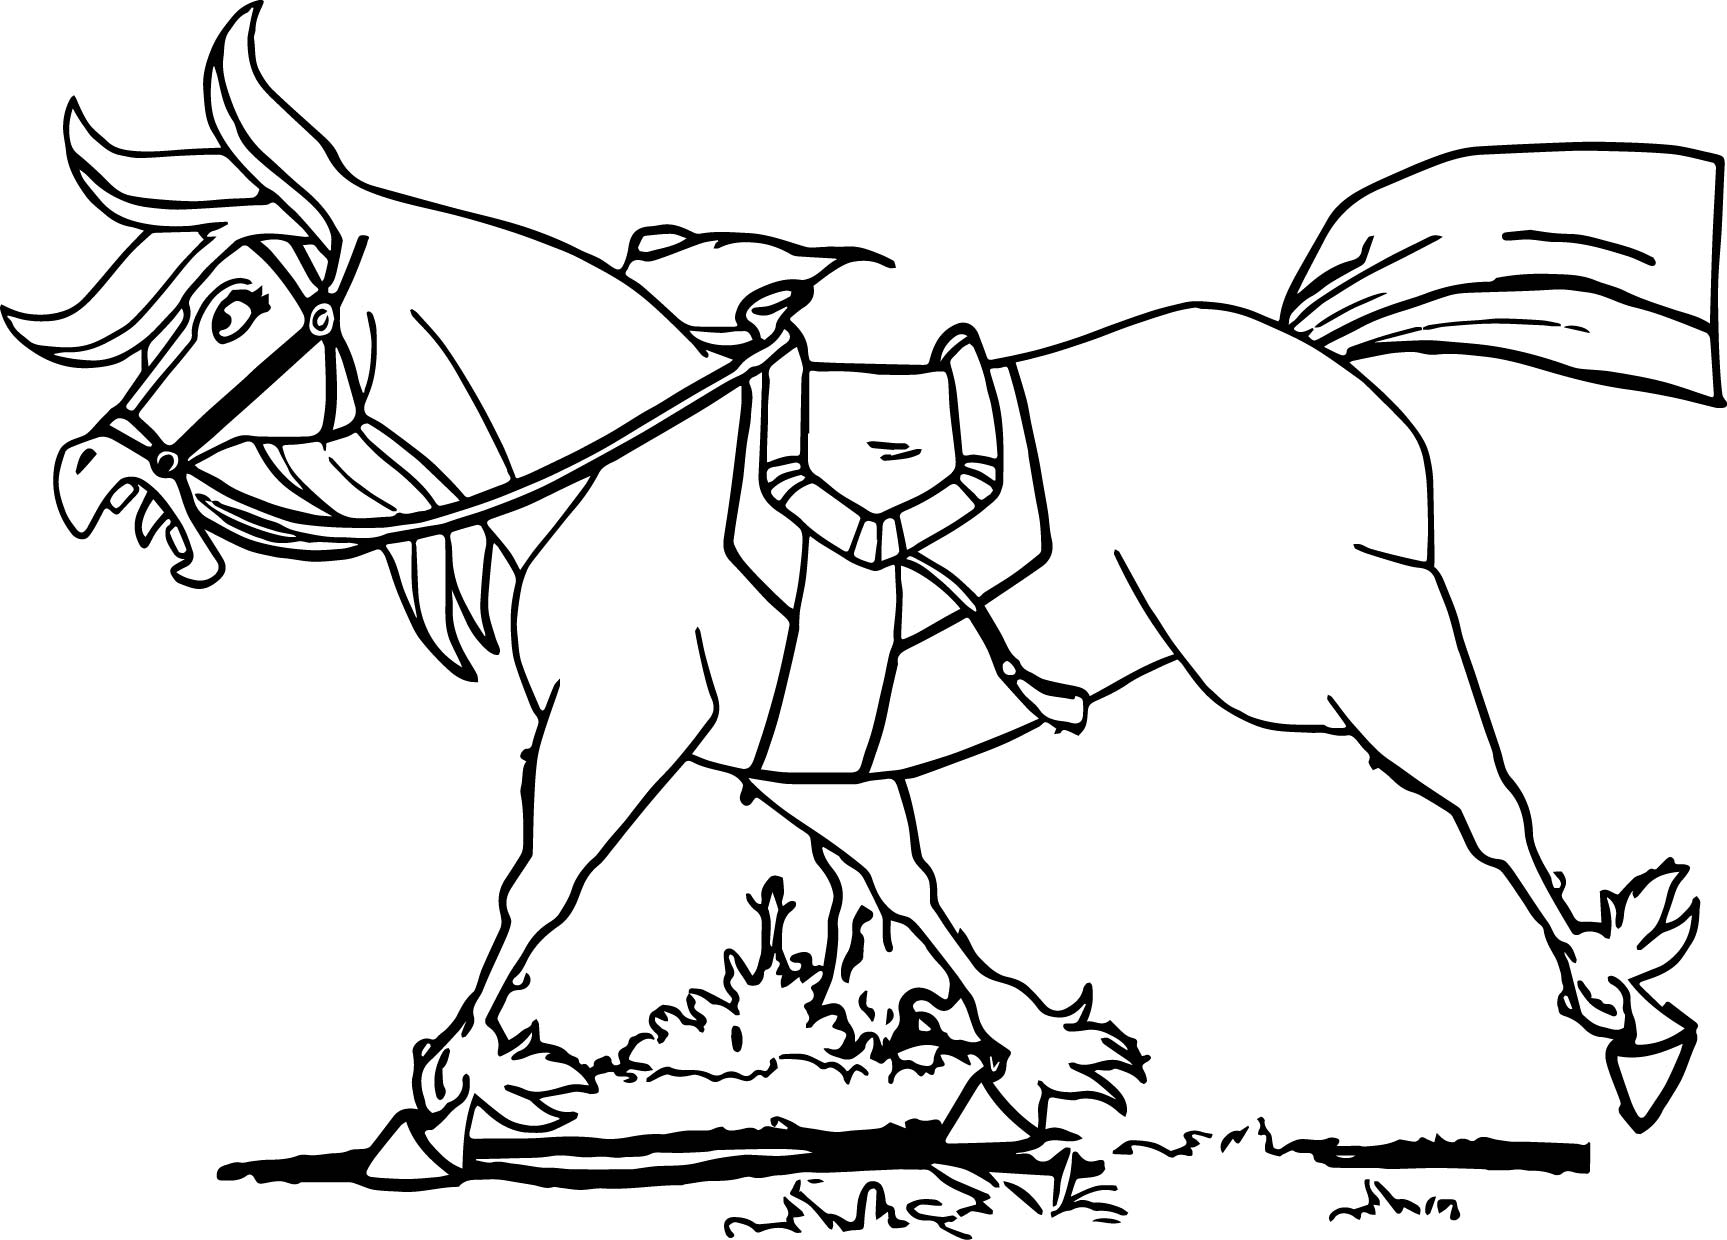 knight and horse coloring pages - photo#18